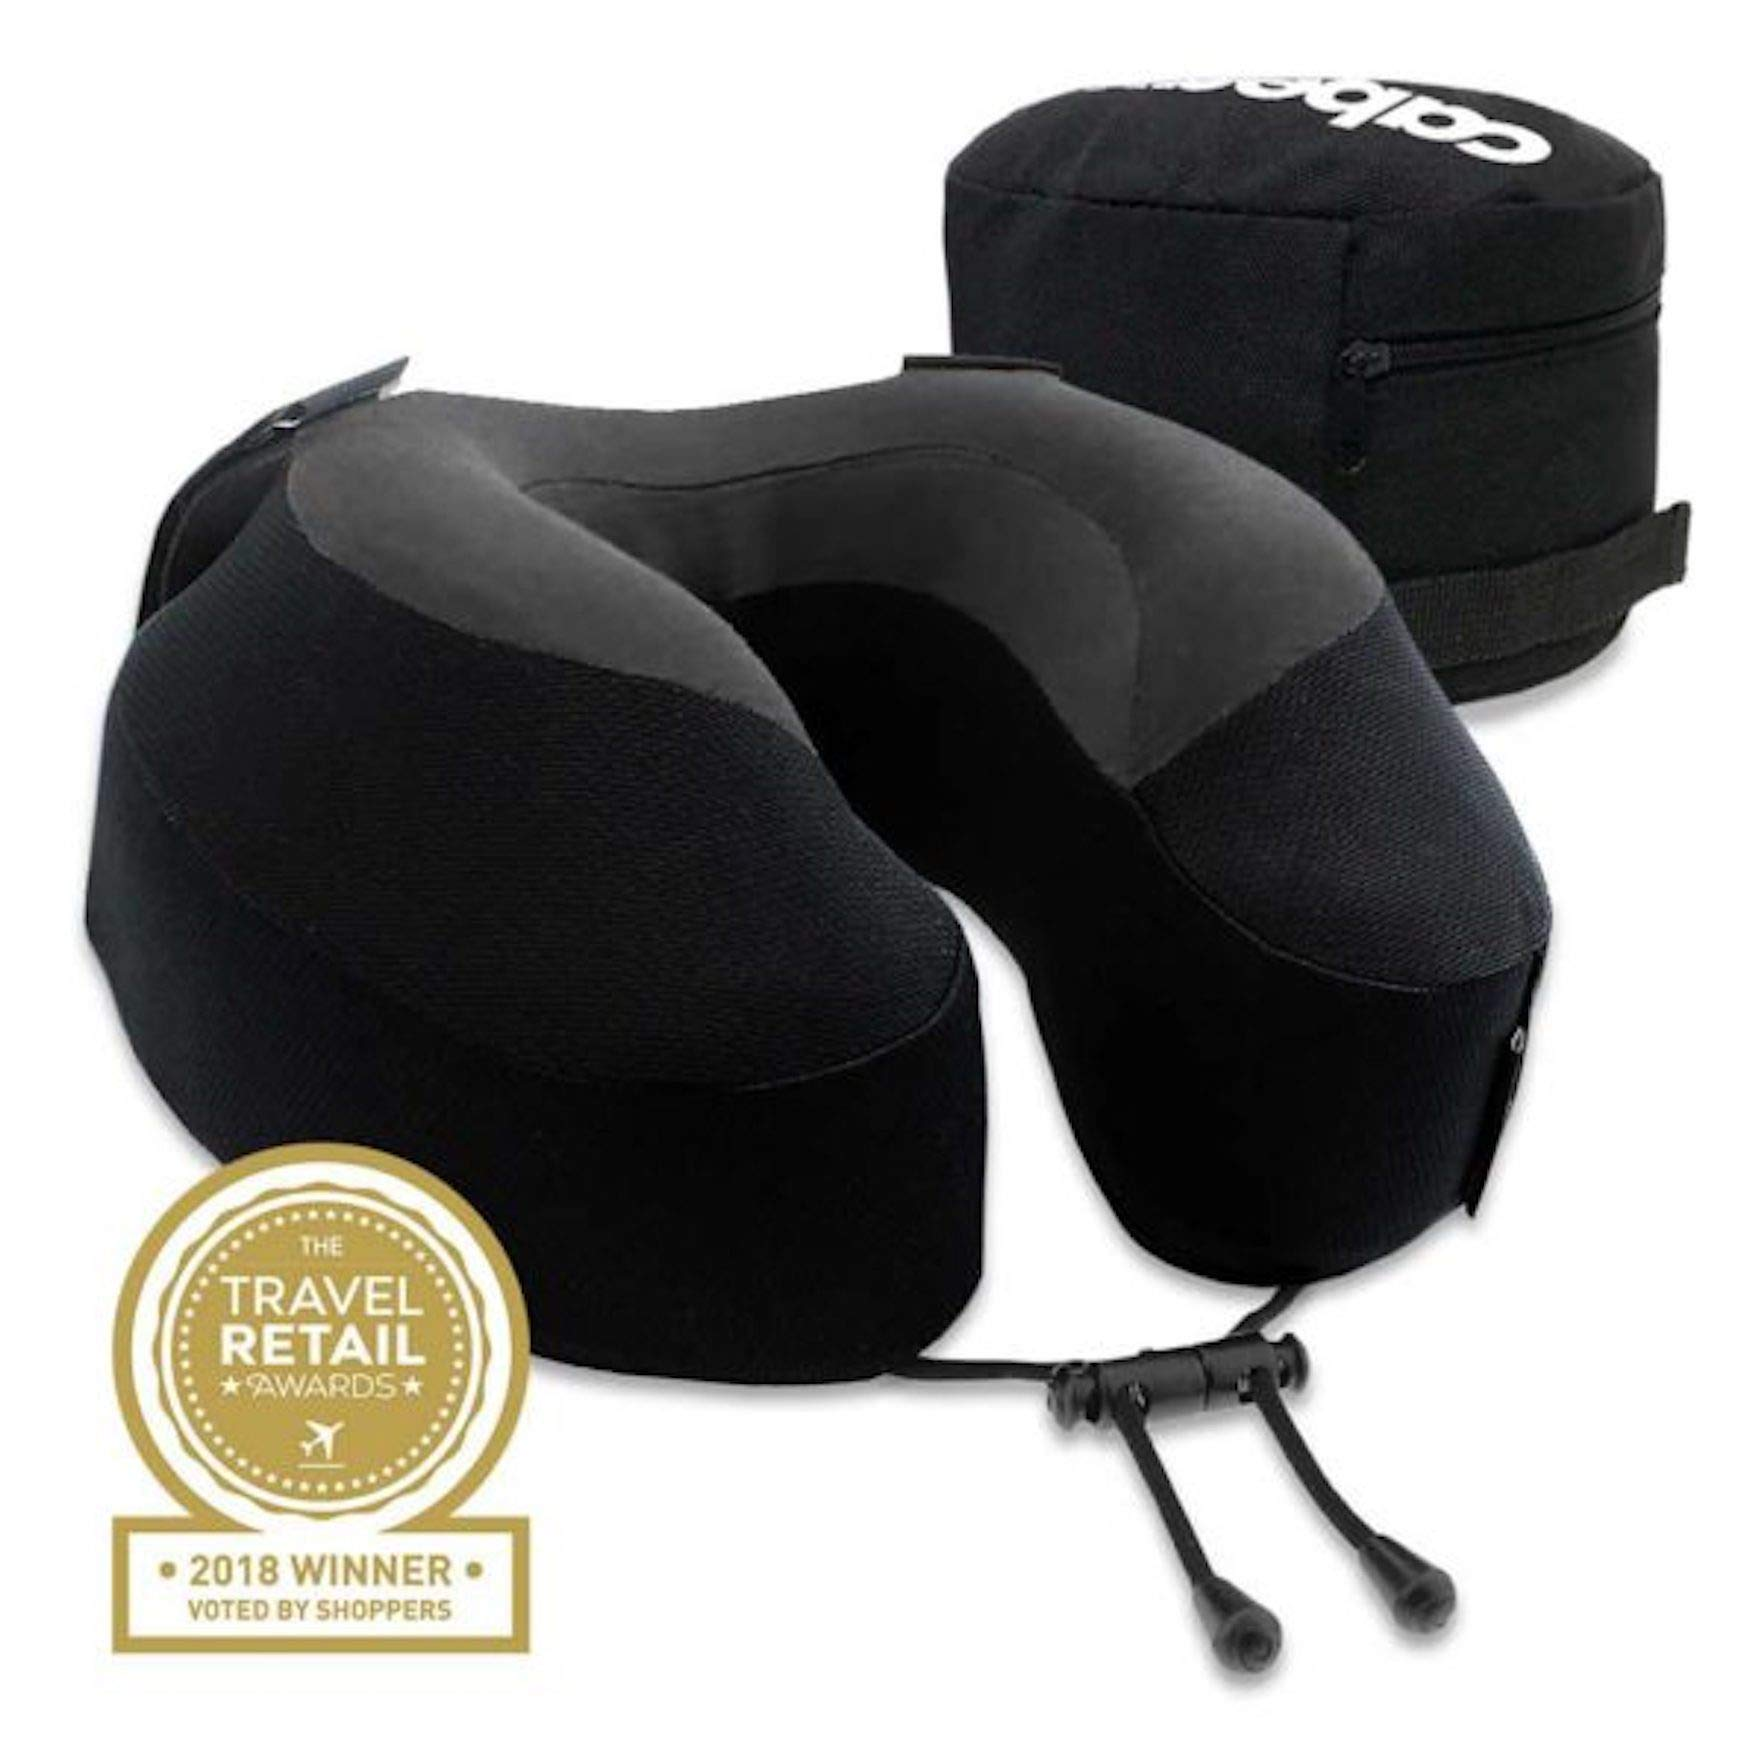 Cabeau Evolution S3 Travel Pillow - Straps to Airplane Seat - Ensures Your Head Won't Fall Forward - Relax with Plush Memory Foam - Quick-Dry Fabric - Secure Head and Neck Support